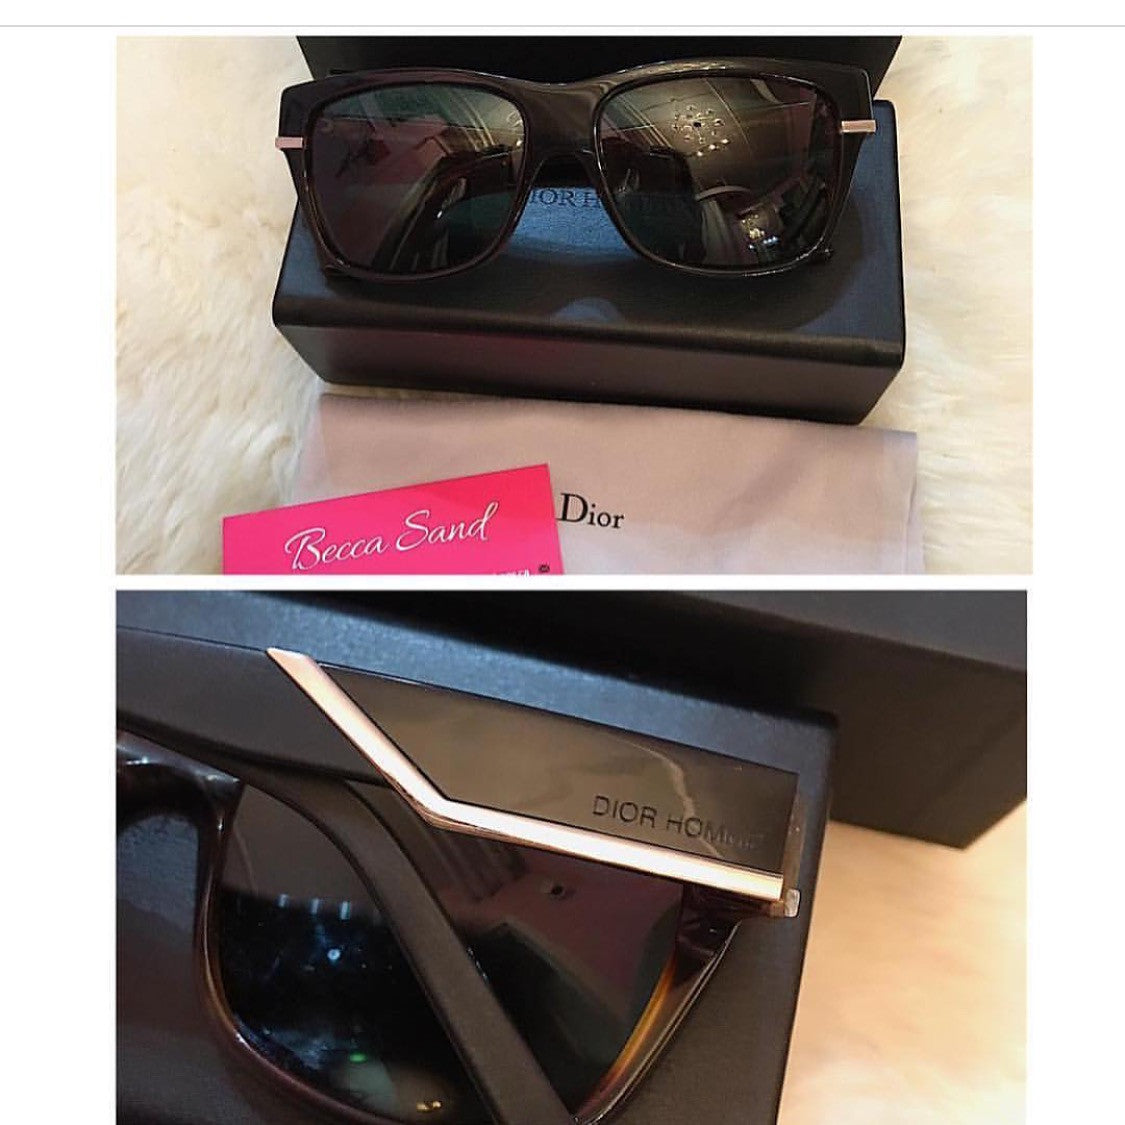 dd19d29b8932 Dior Homme Sunglasses.  175.00. Quantity. Dior Homme Sunglasses with case